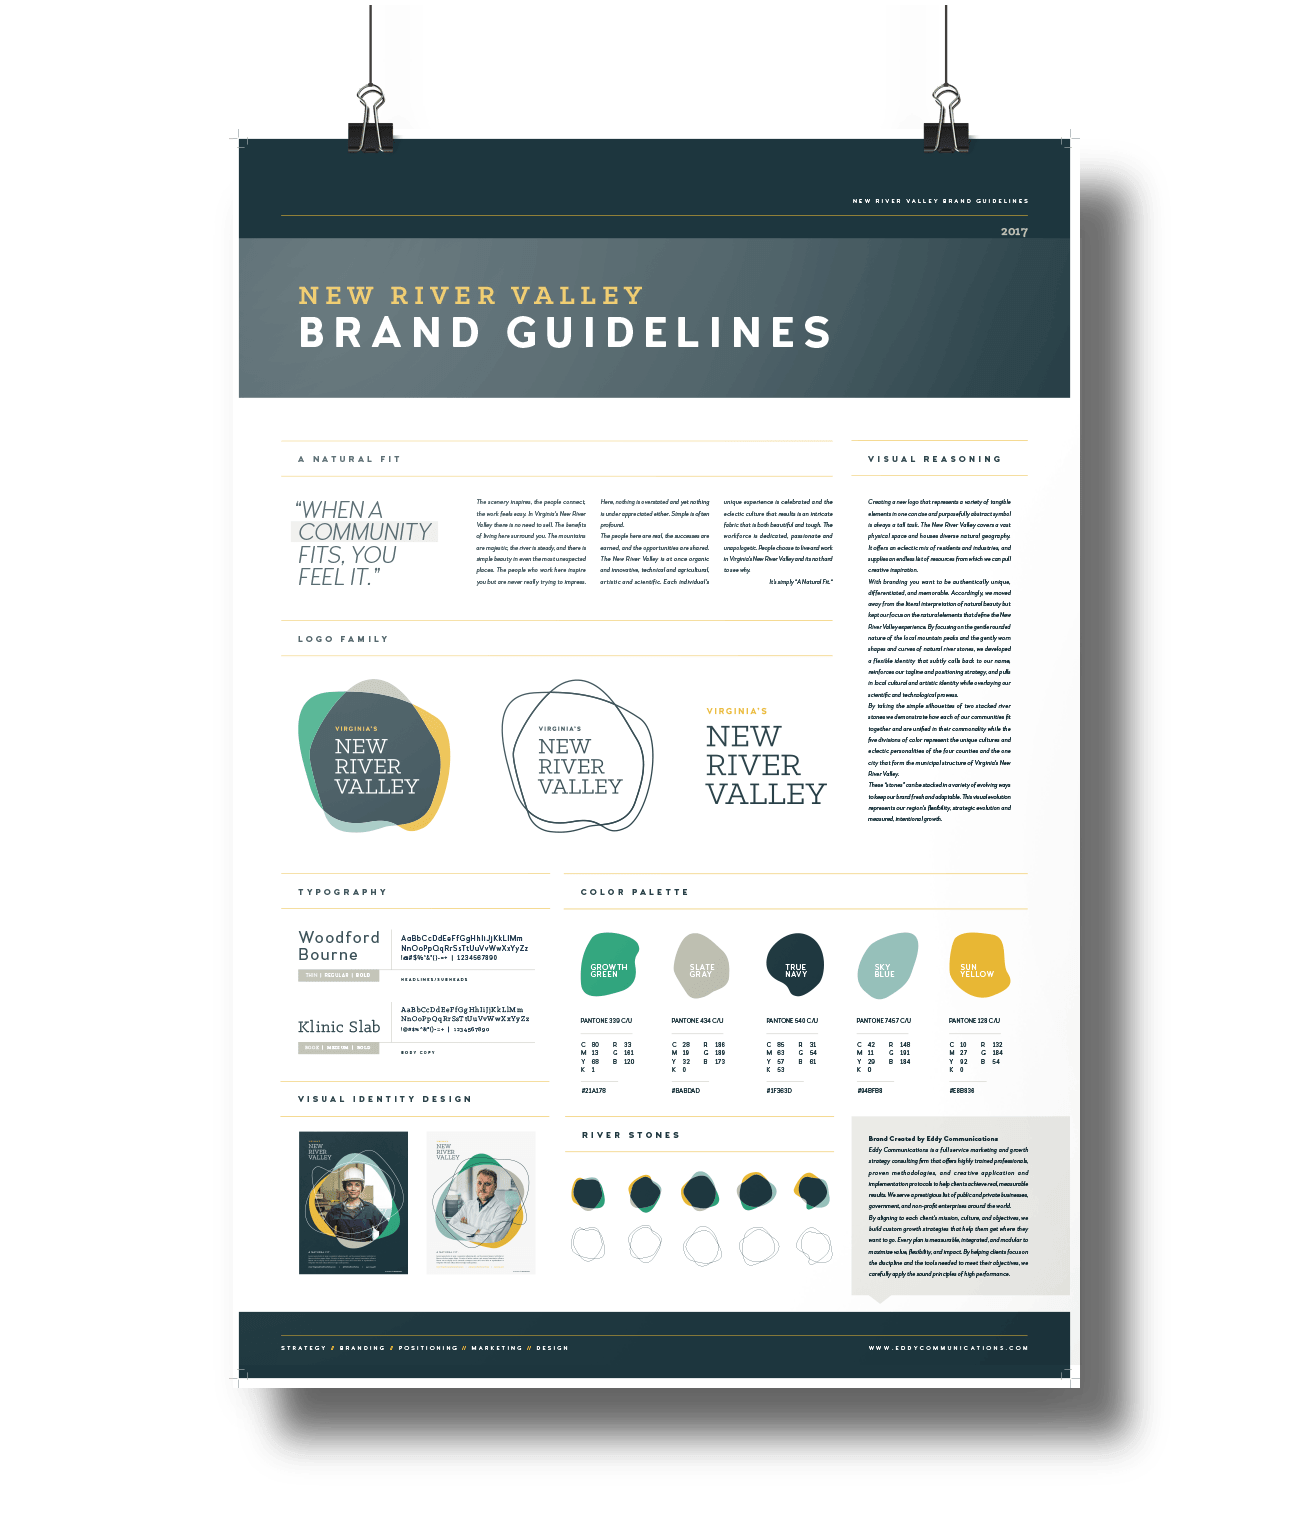 New River Valley Brand Guidlines